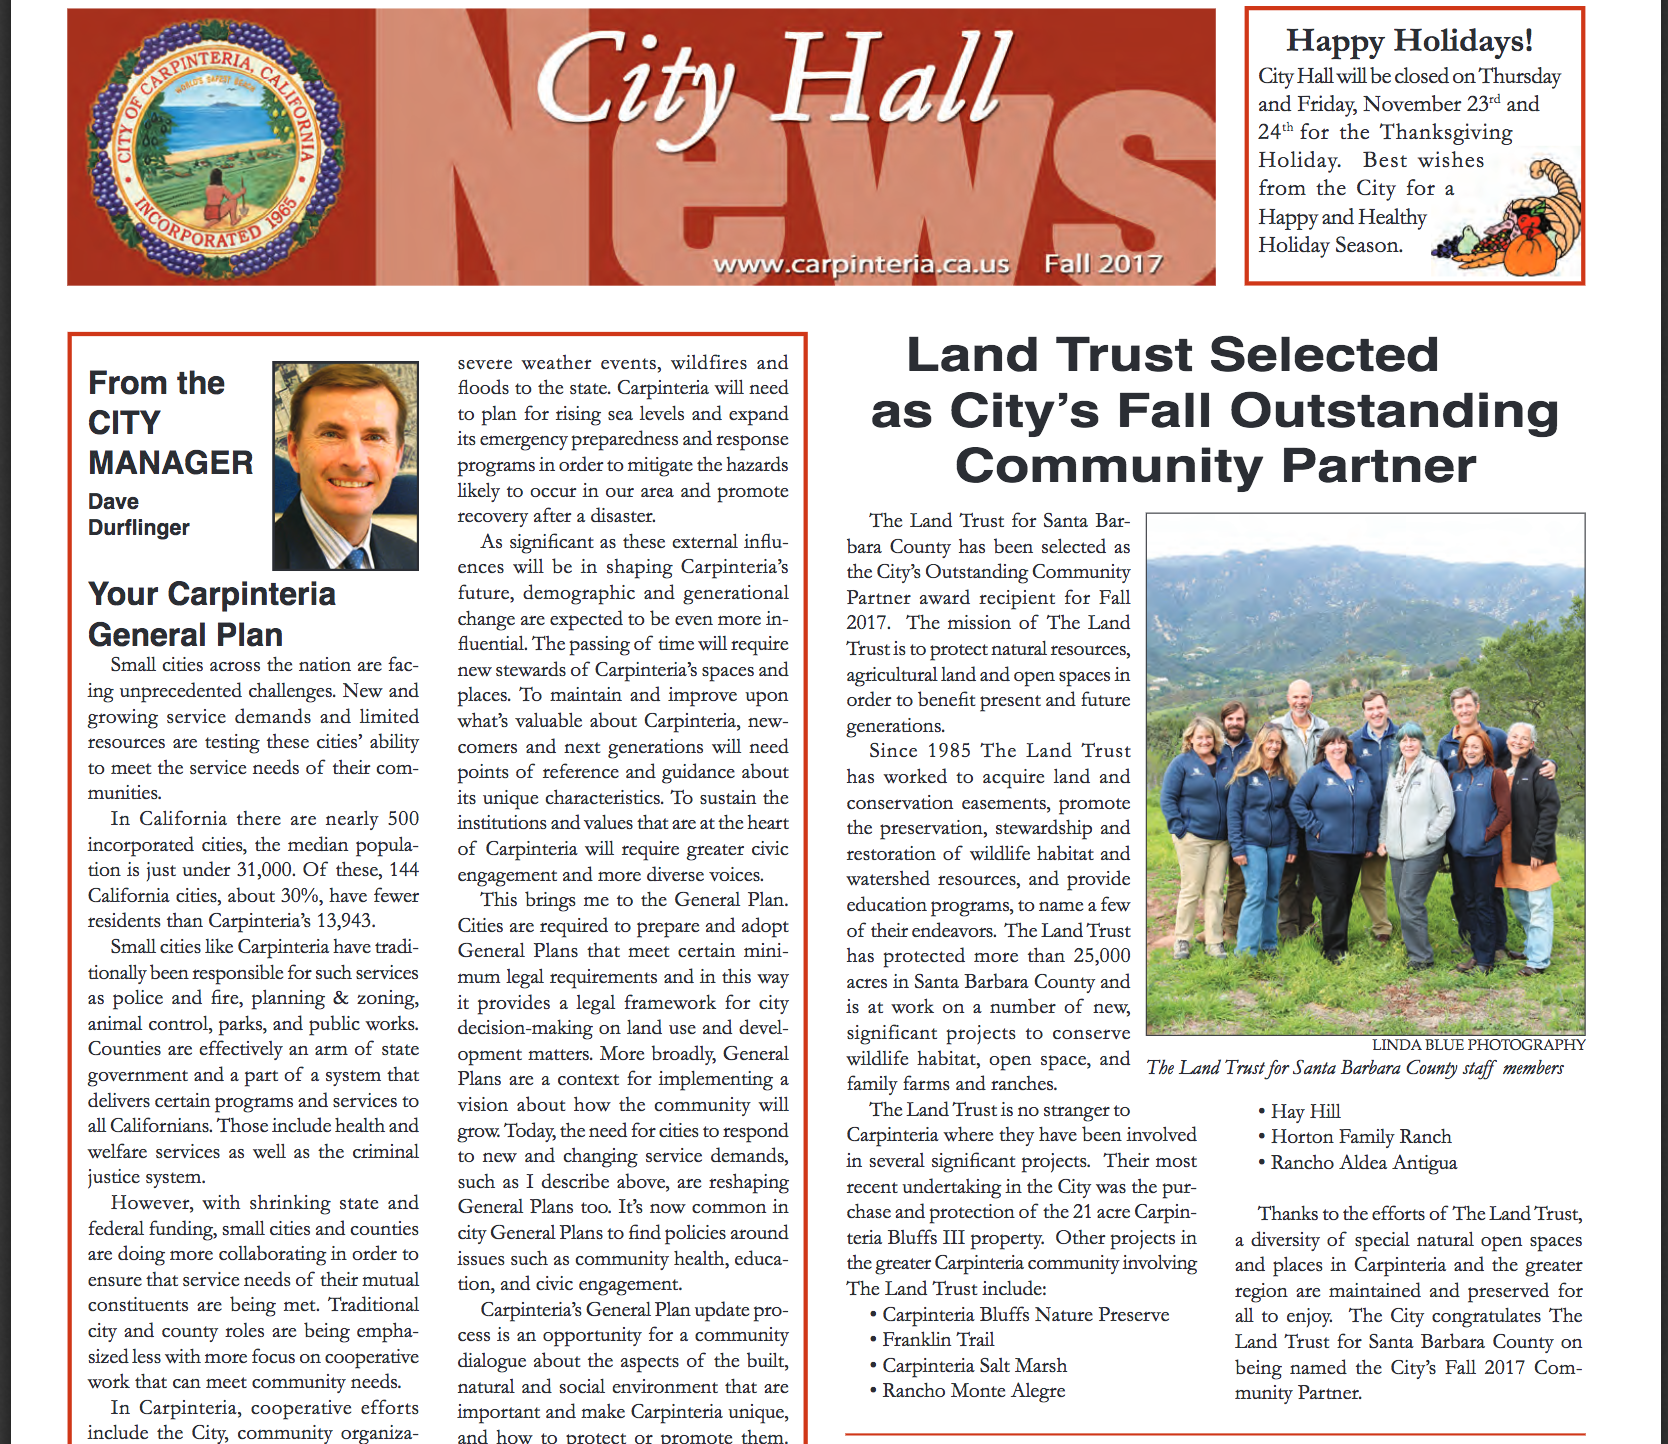 Land Trust Selected As Carpinteria's Fall Outstanding Community Partner